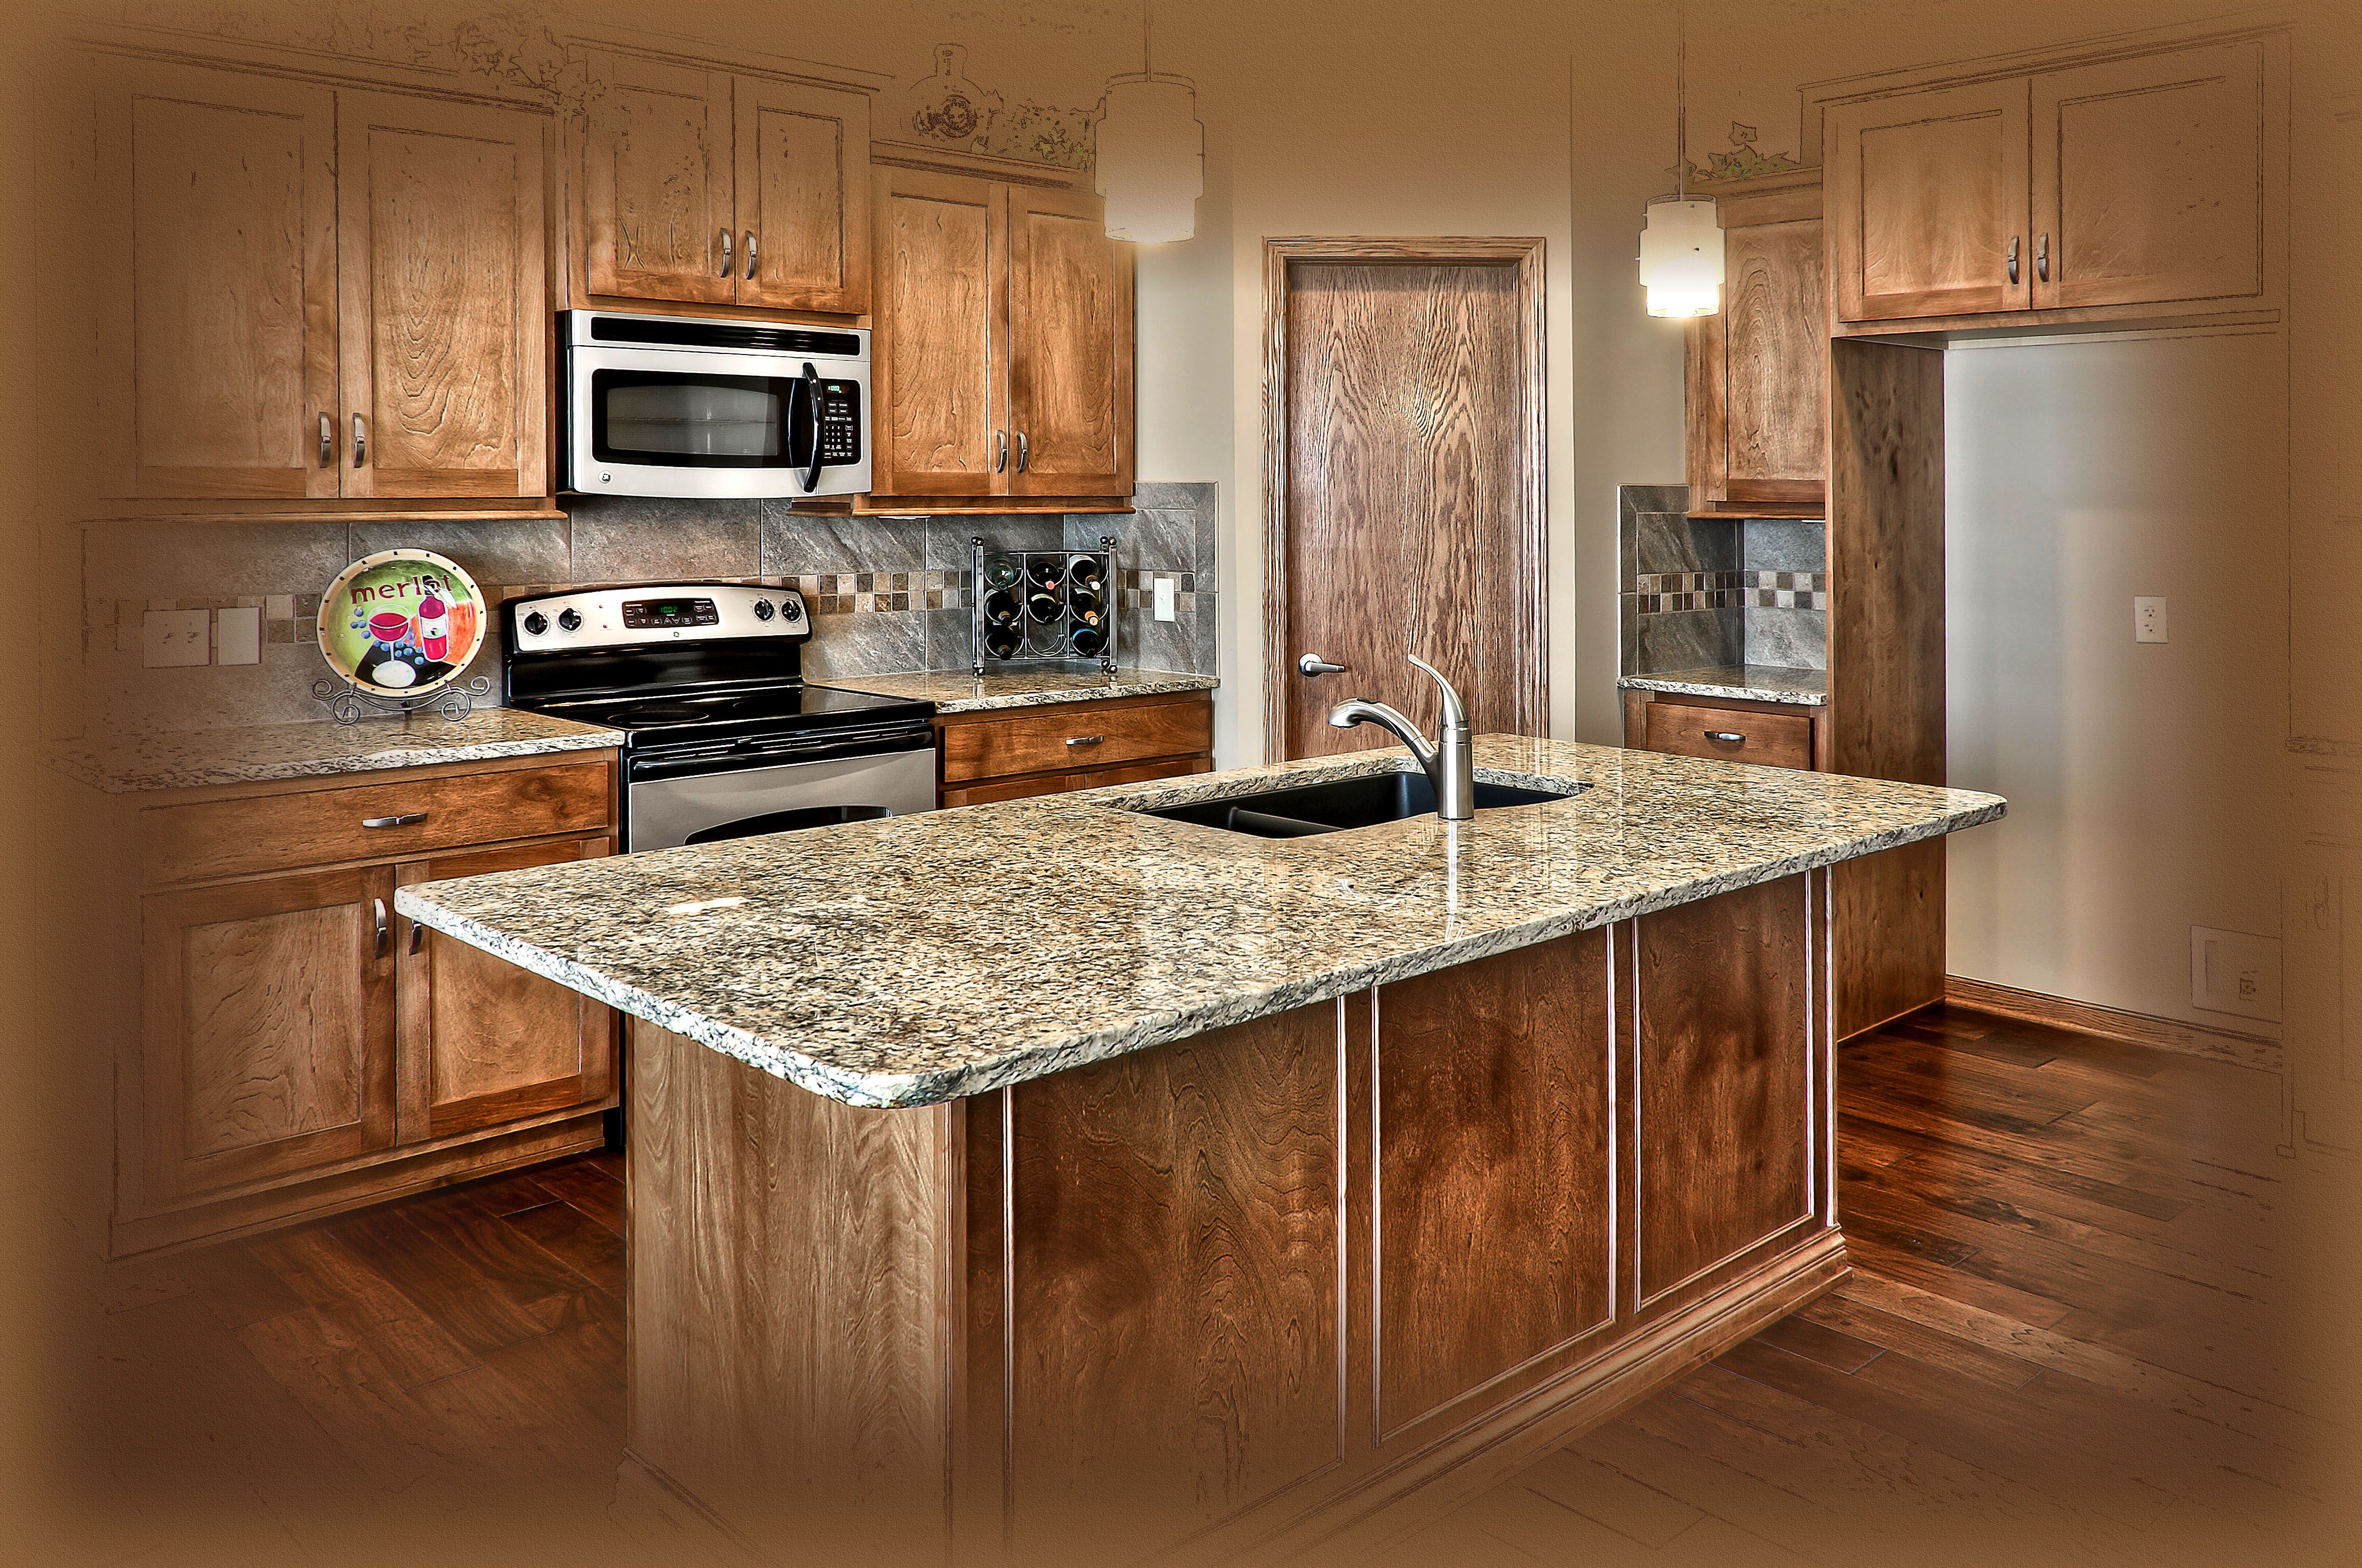 Omaha, NE home by Prairie Homes. From design to reality